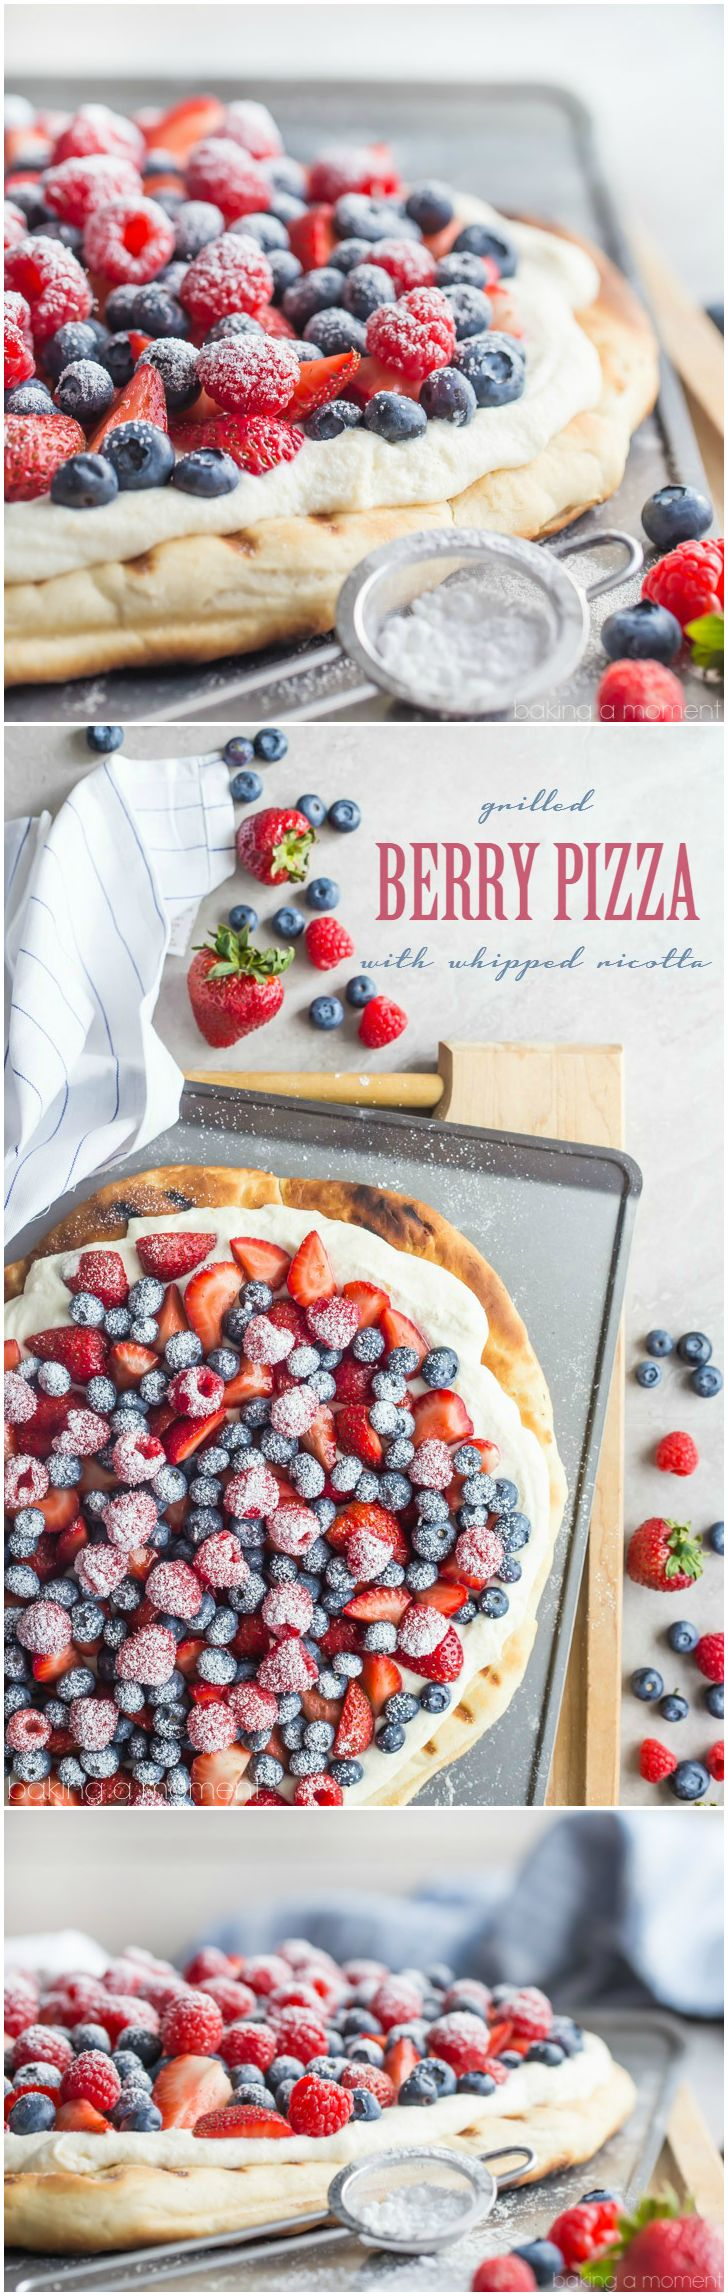 Such a great summer snack or dessert! This honey wheat grilled pizza whips up in a snap with no rise time, and the lightly sweet and fluffy whipped ricotta is so good with fresh berries!  food recipes berries